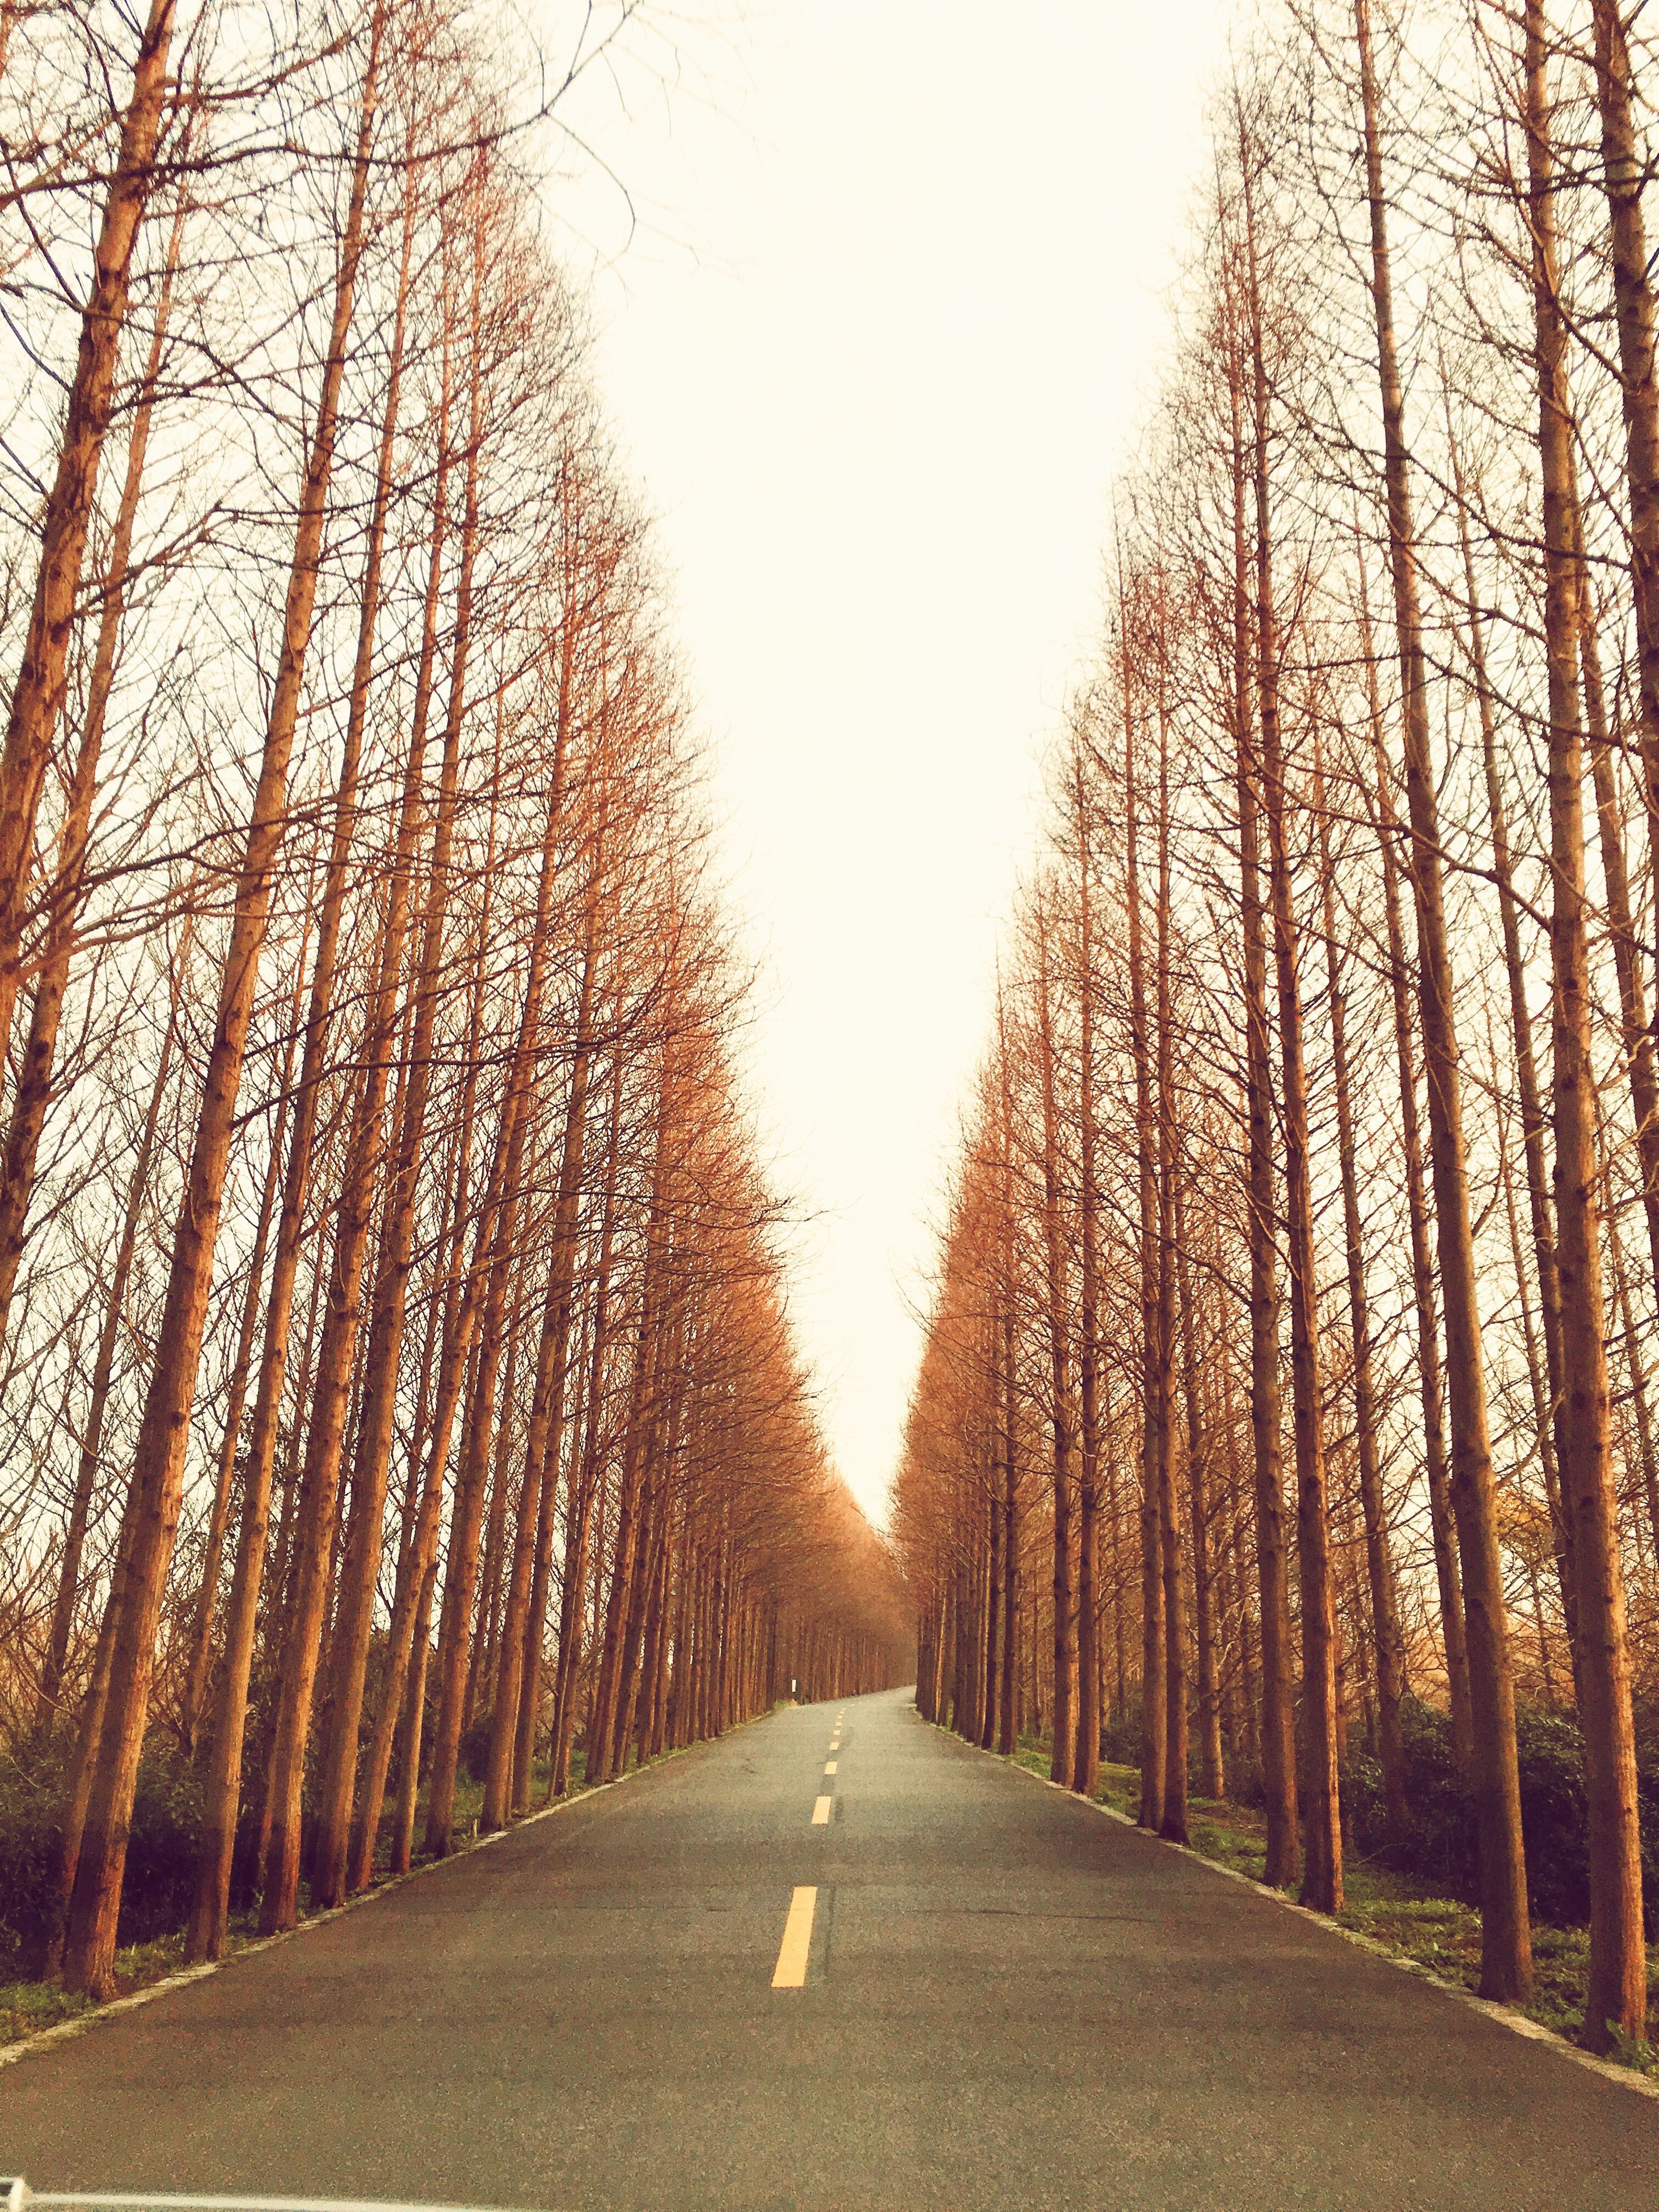 the way forward, tree, diminishing perspective, vanishing point, road, transportation, treelined, empty road, clear sky, tranquility, long, tranquil scene, nature, street, bare tree, empty, country road, growth, road marking, branch